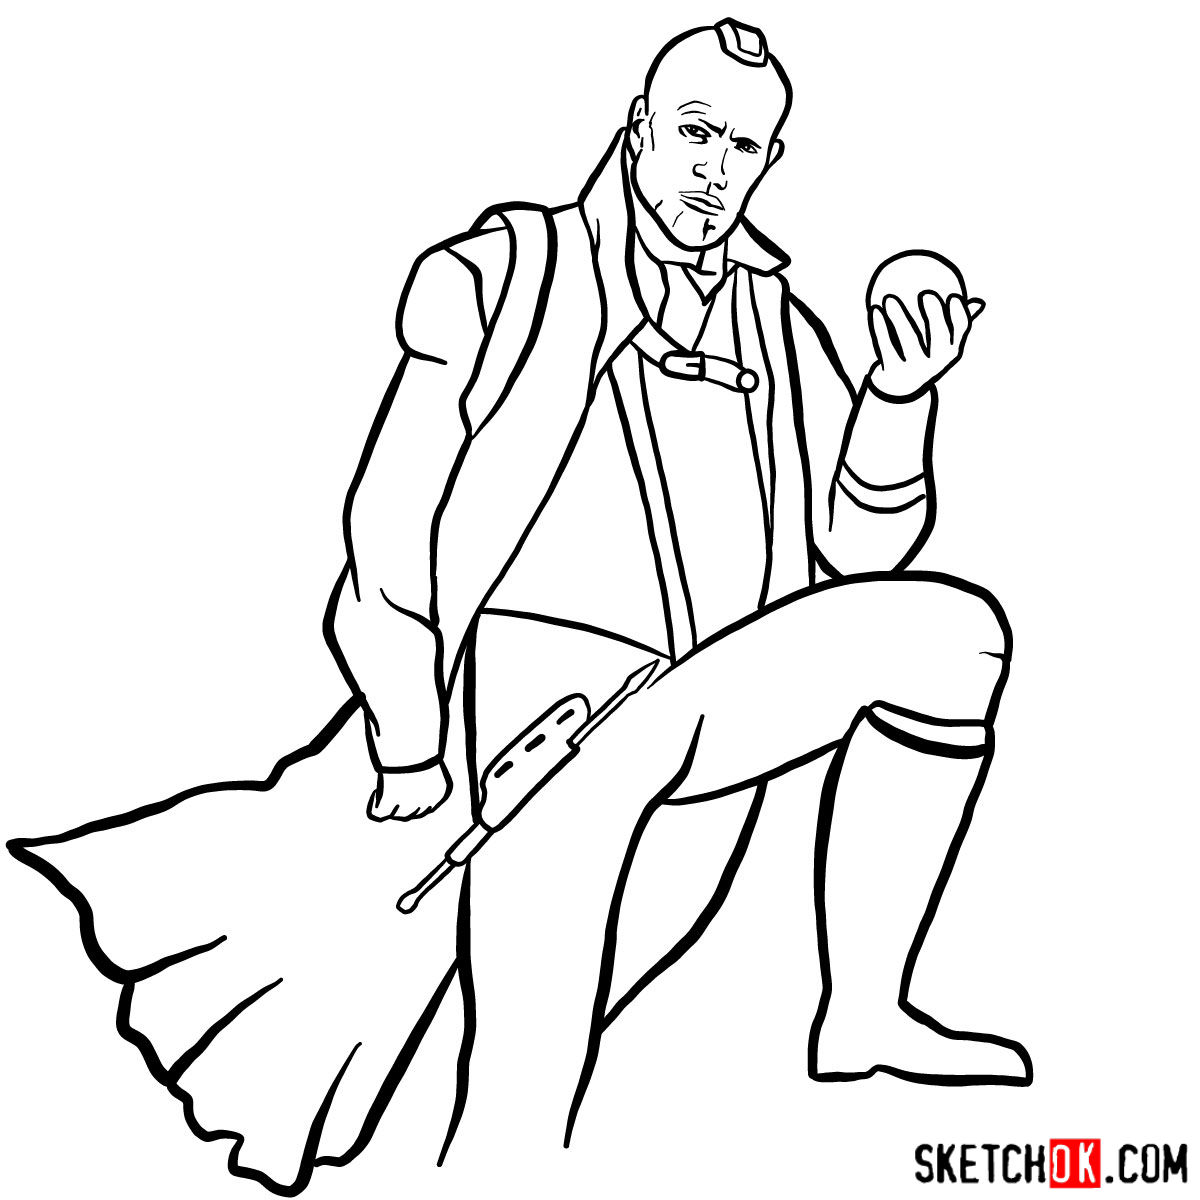 How to draw Yondu Udonta from Guardians of the Galaxy - step 14